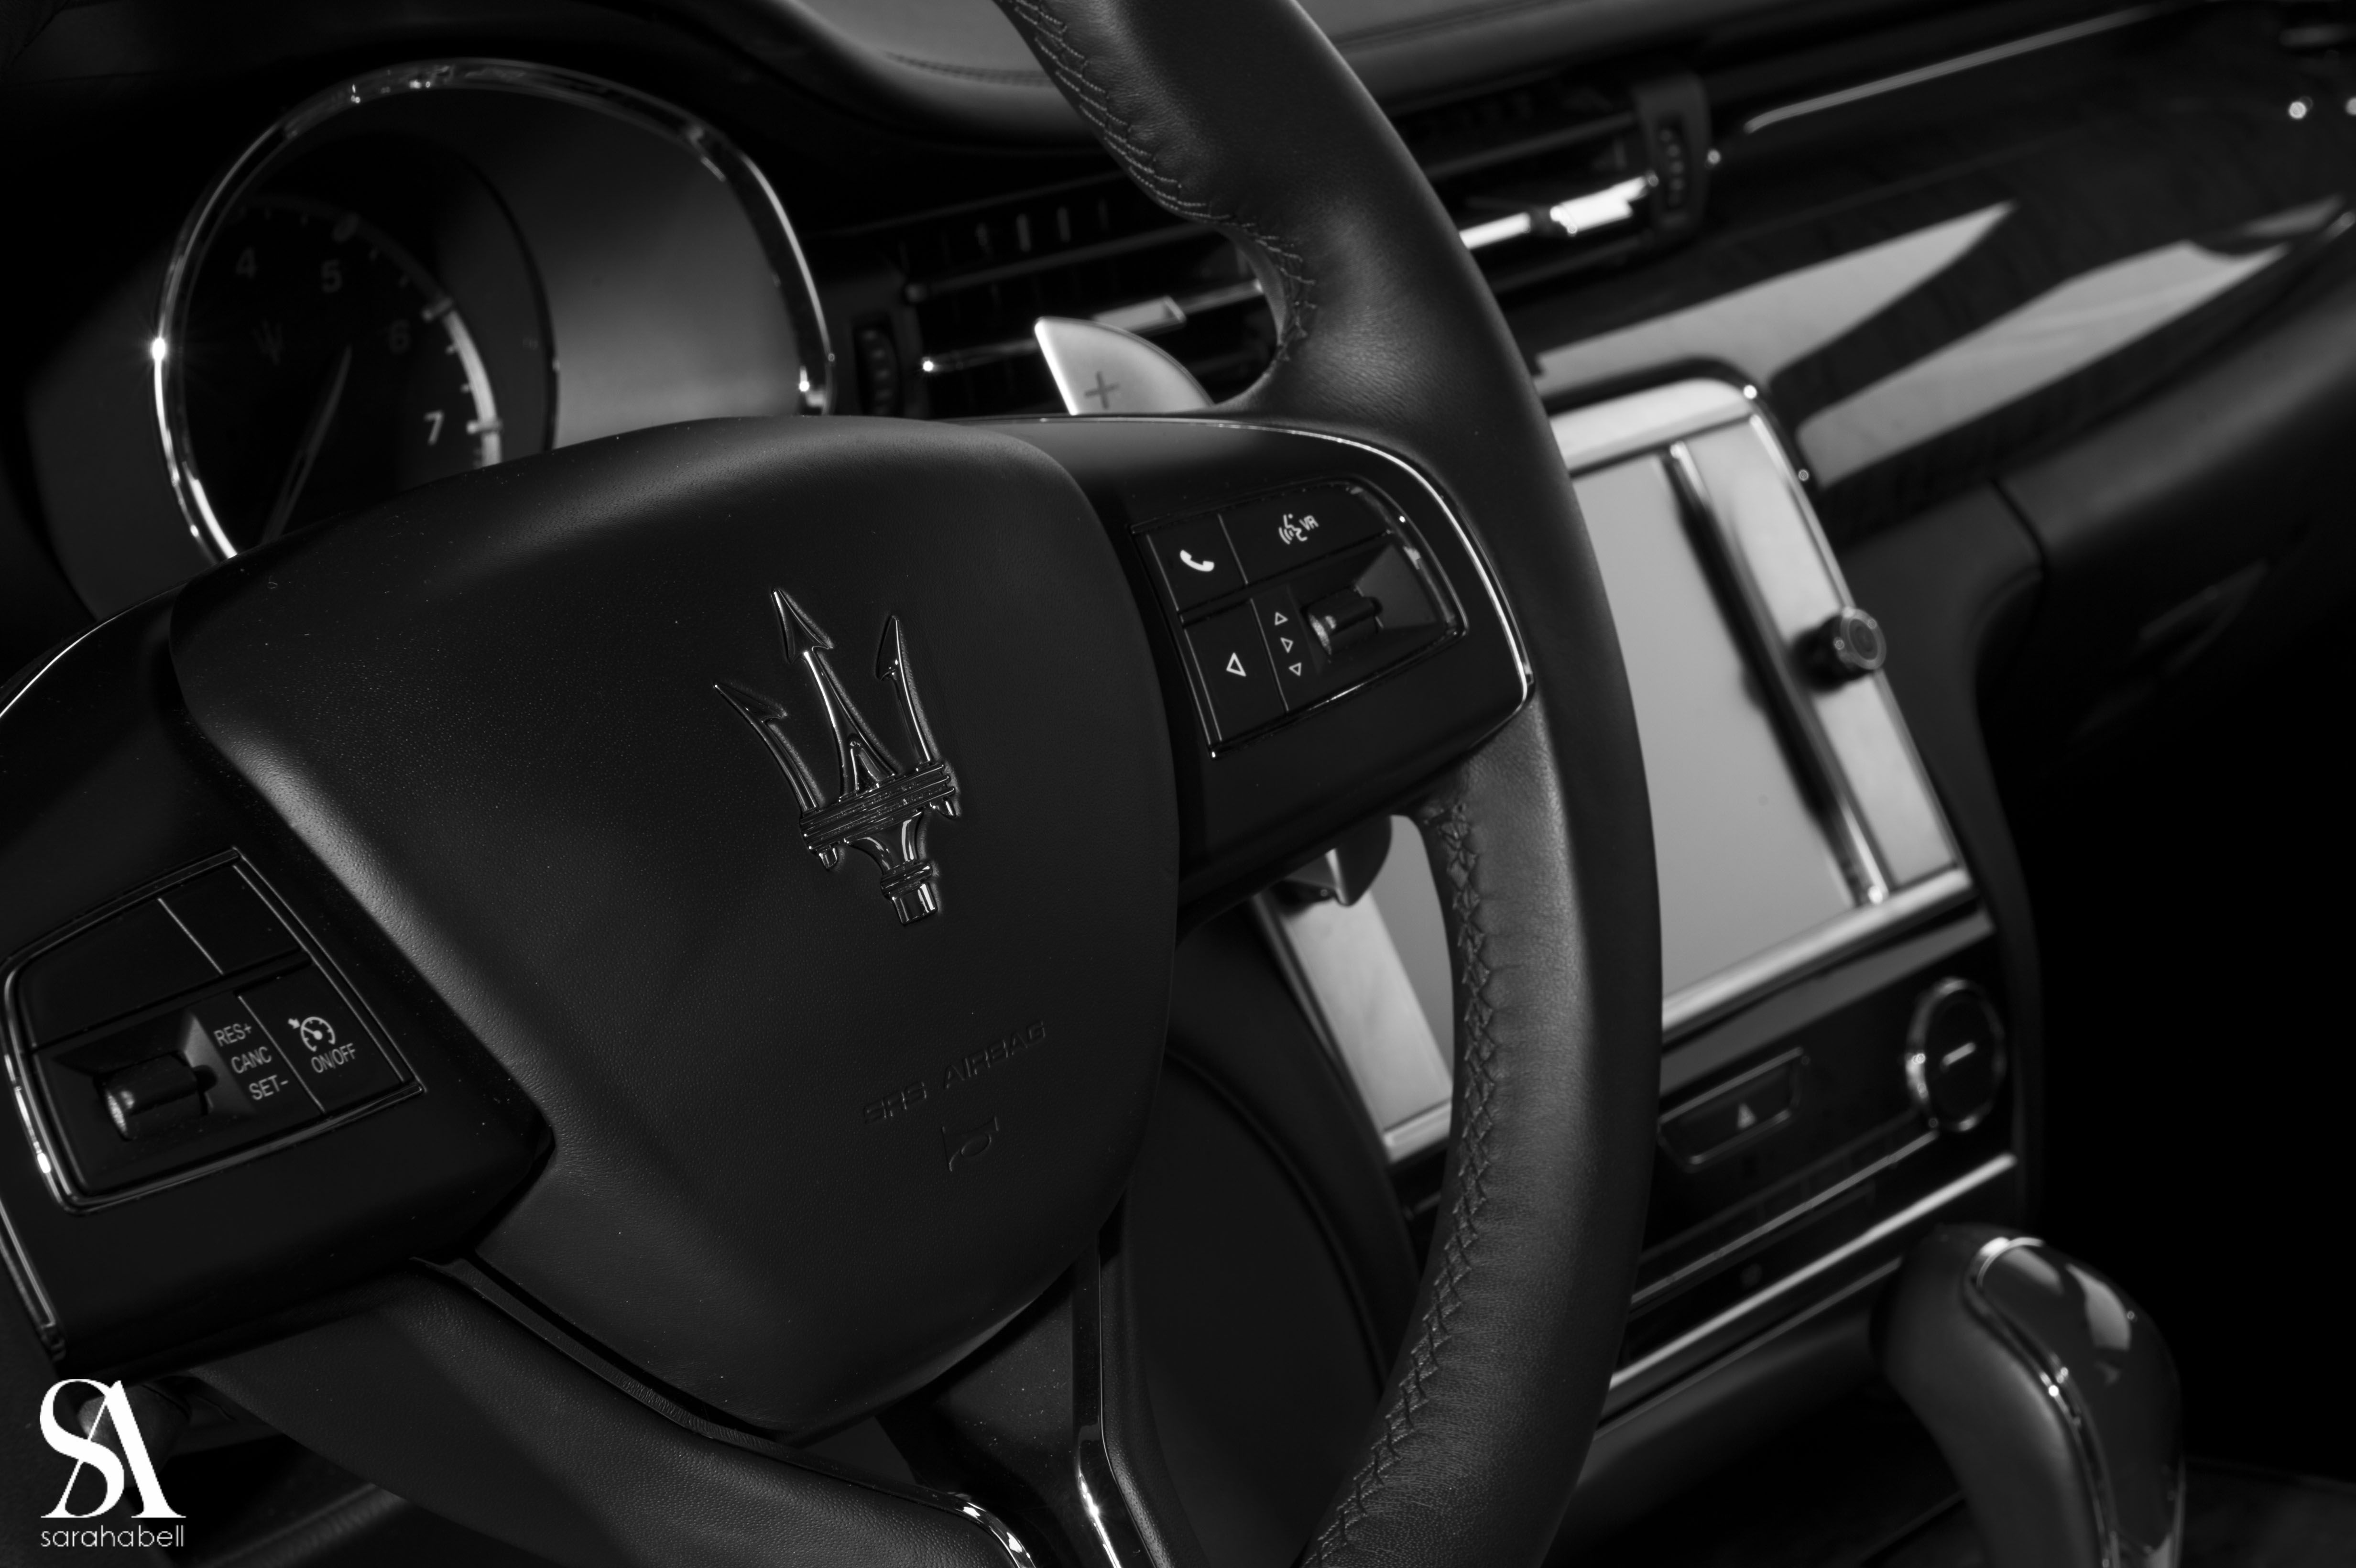 Sarah Abell With A Picture Inside A Maserati